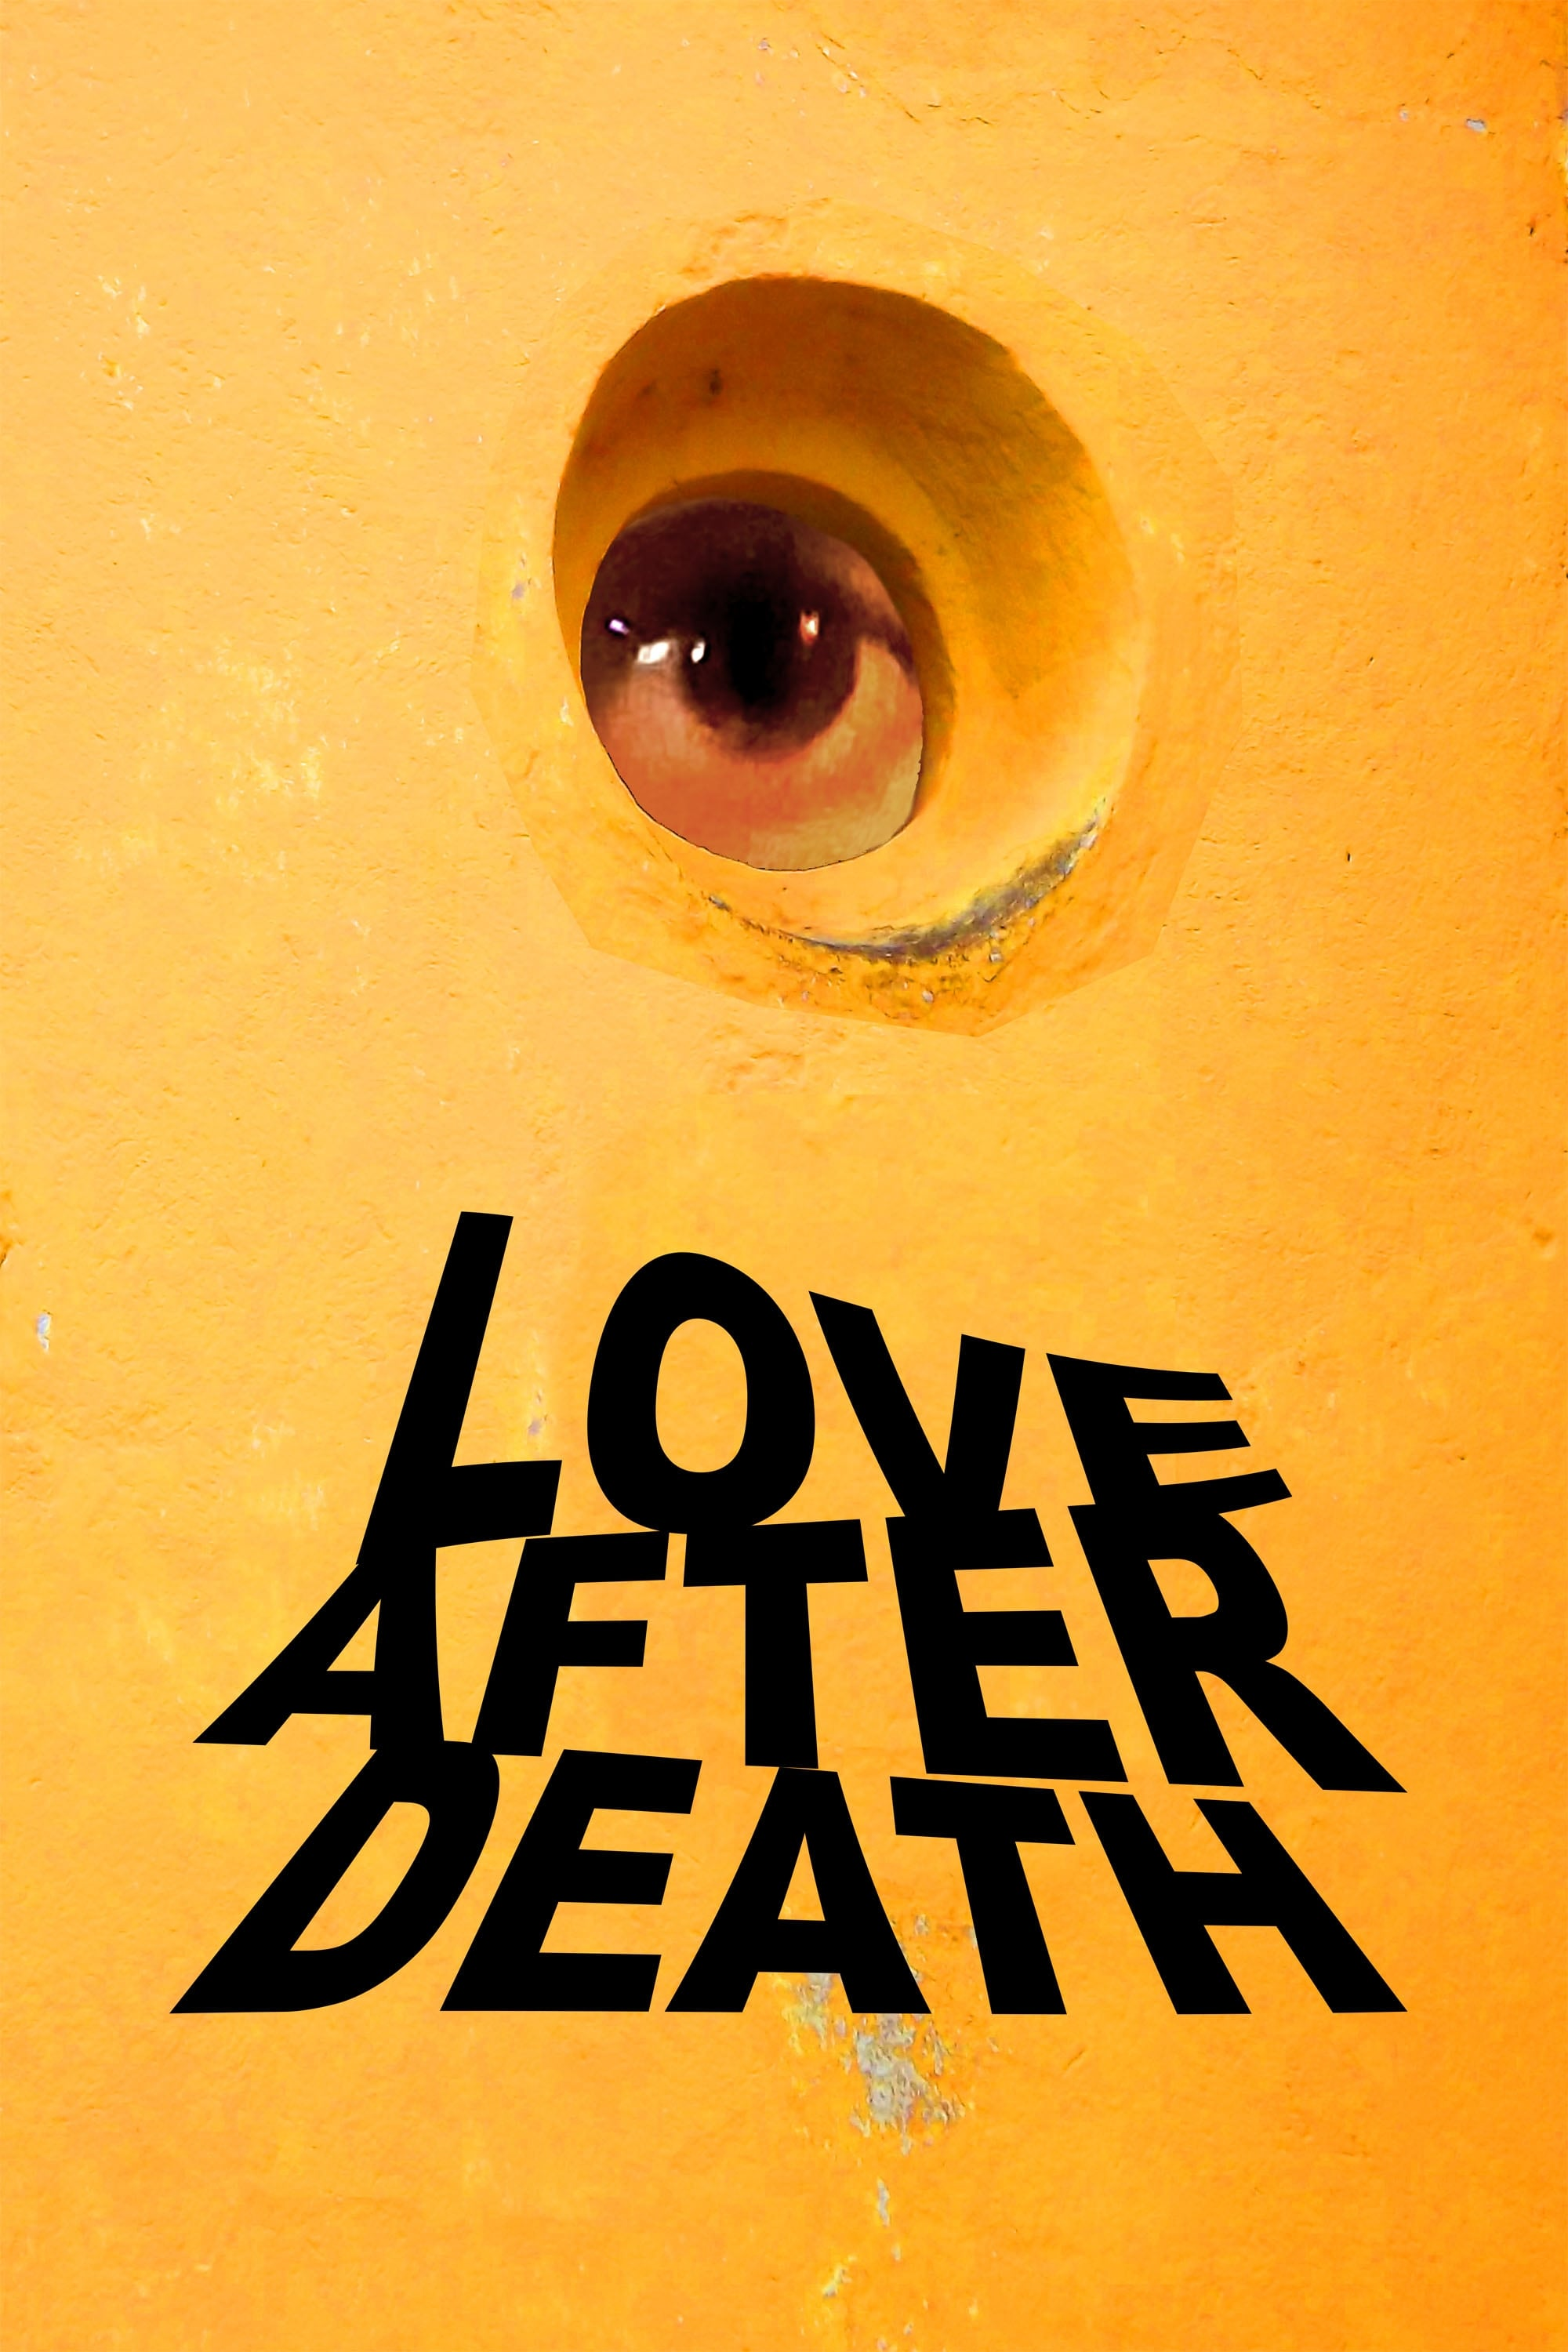 Love After Death (1970)